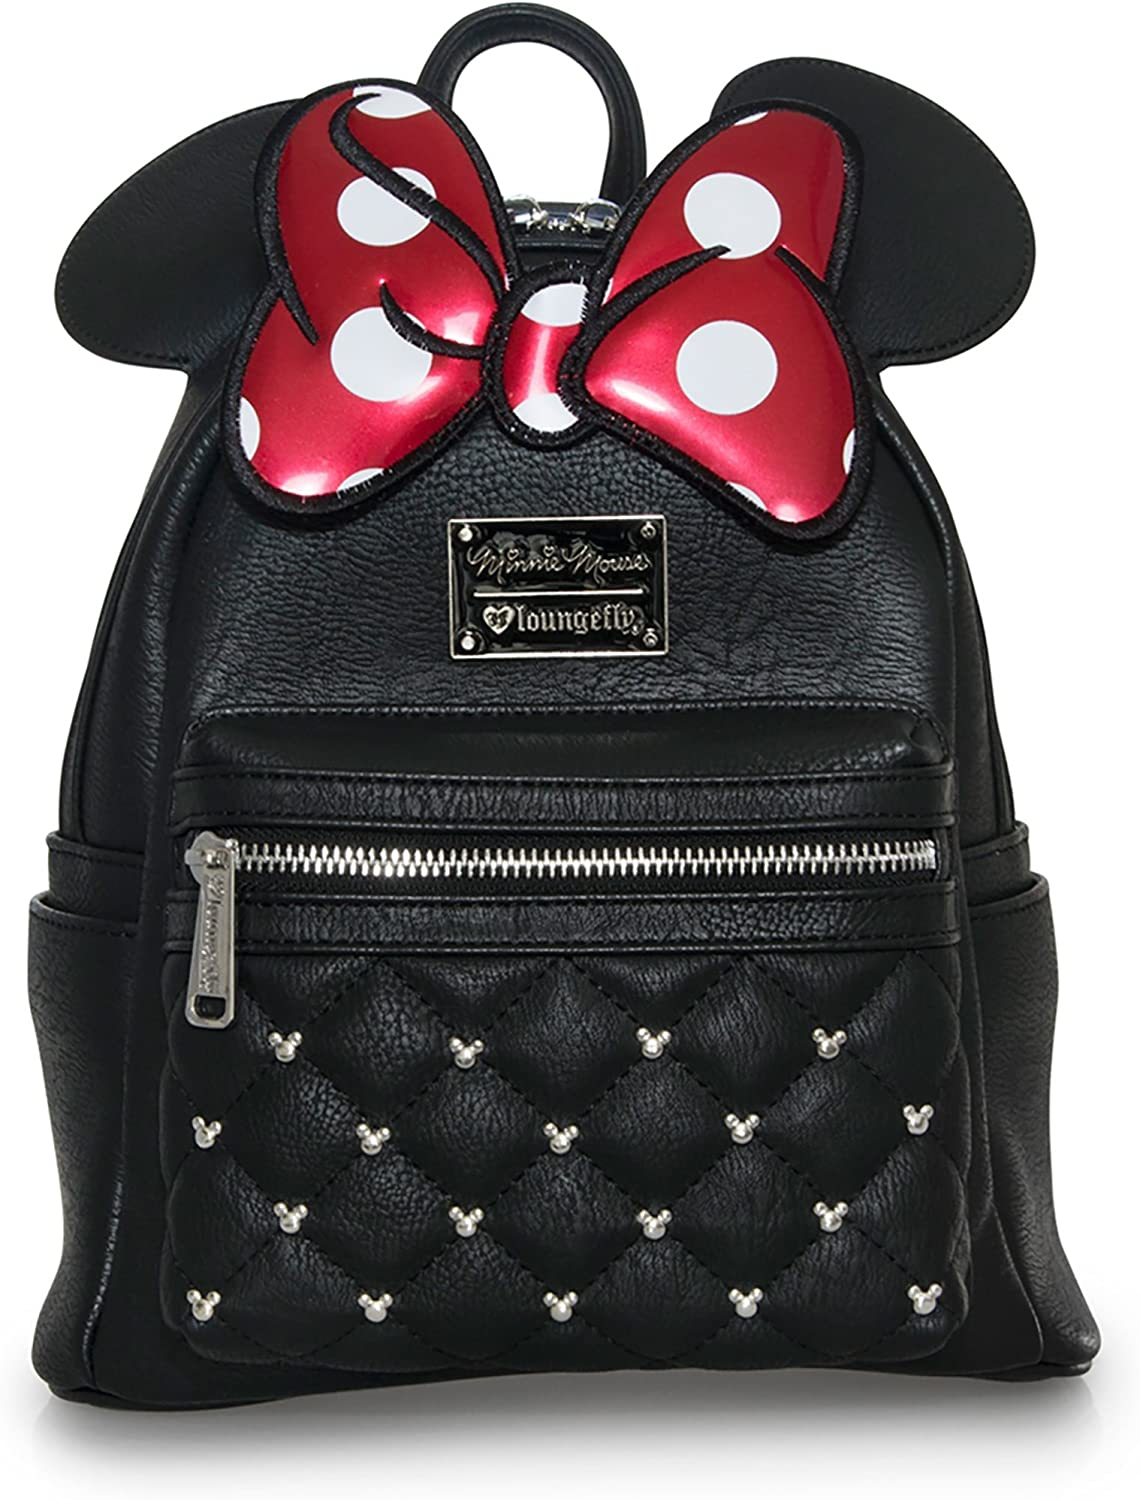 Loungefly Disney Minnie Mouse Quilted Bow Crossbody Bag NEW IN STOCK